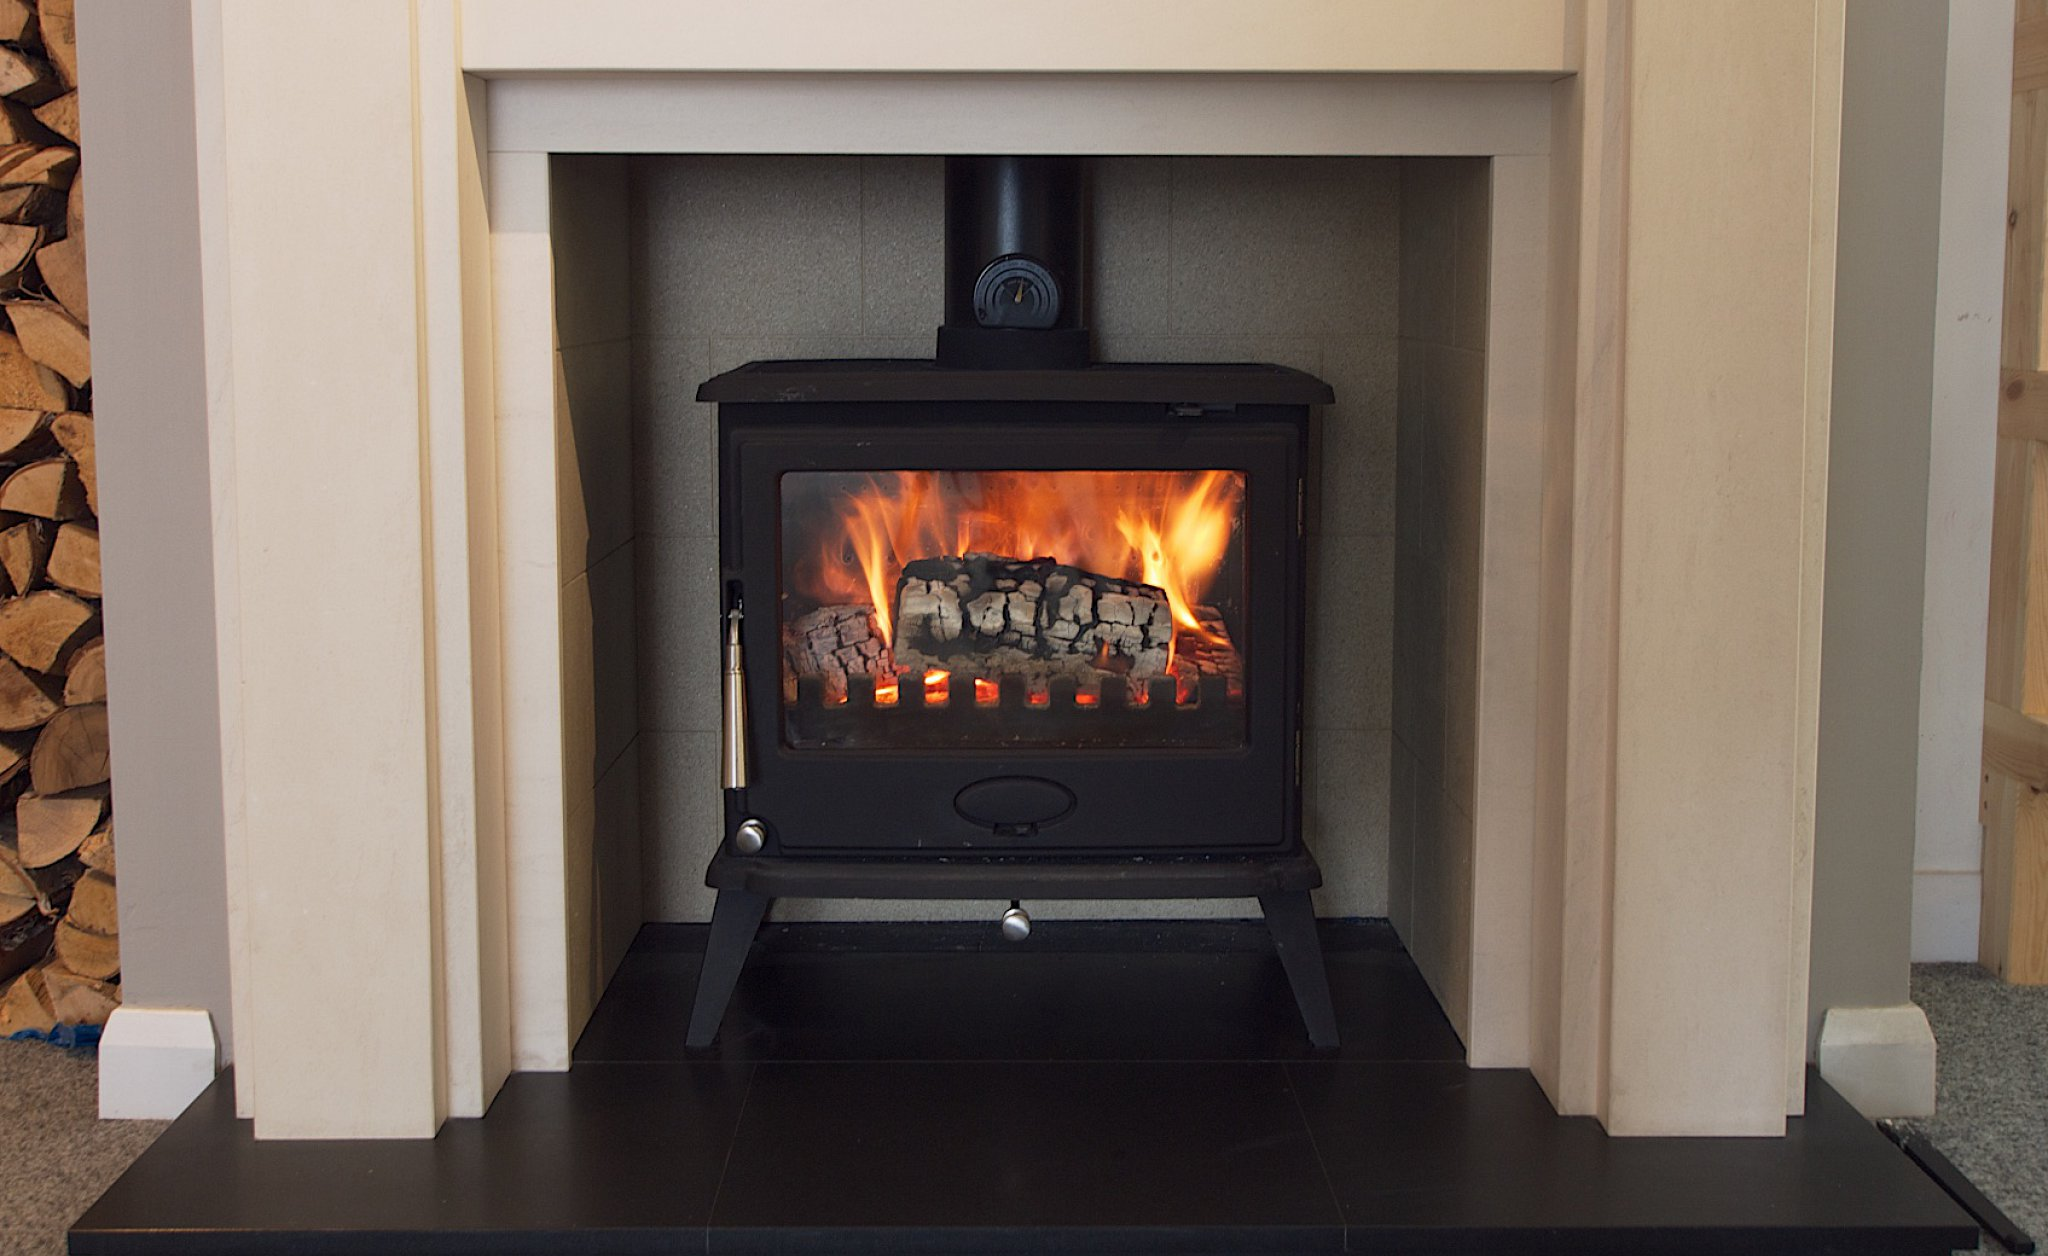 A Newman wood burning stove burning efficiently with kiln dried logs